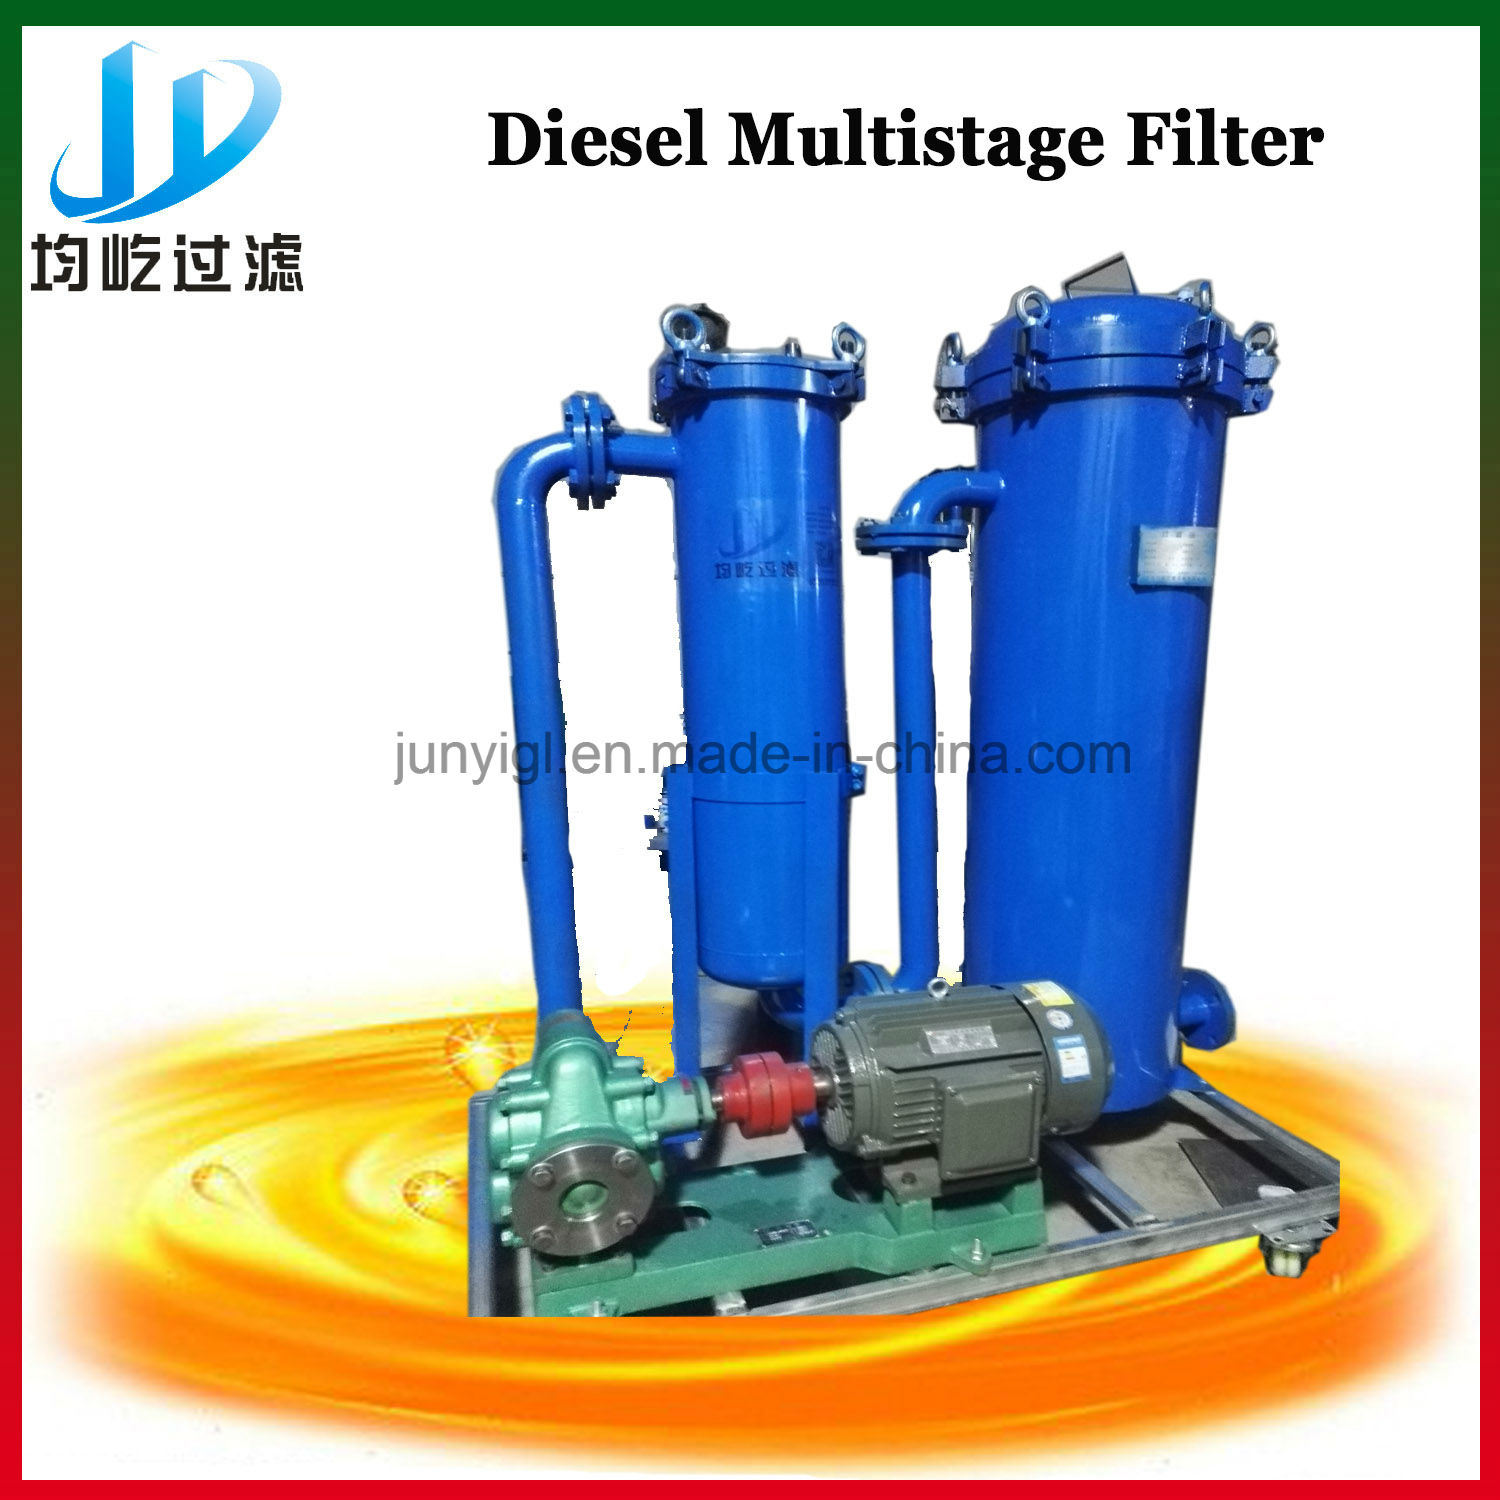 China Multistage Diesel Oil Filter System Specially For Generating Electricity Separator Decoloring